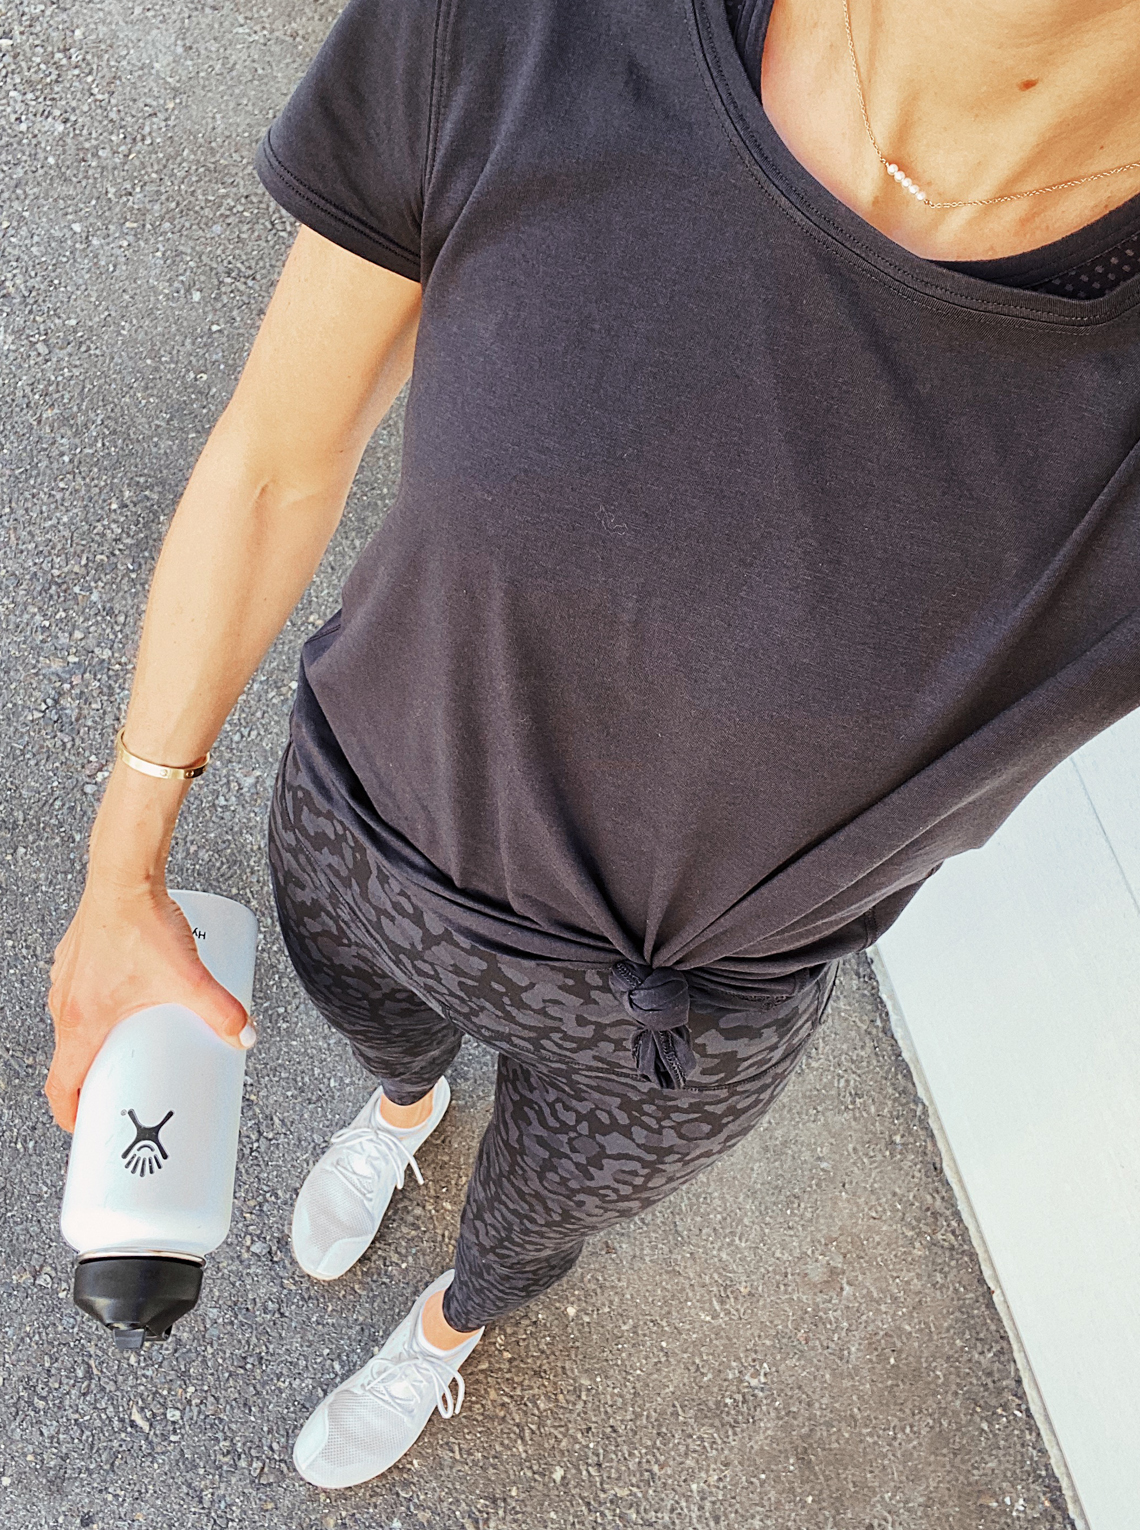 Fashion Jackson Wearing lululemon align black leopard leggings black workout tshirt fitness outfit